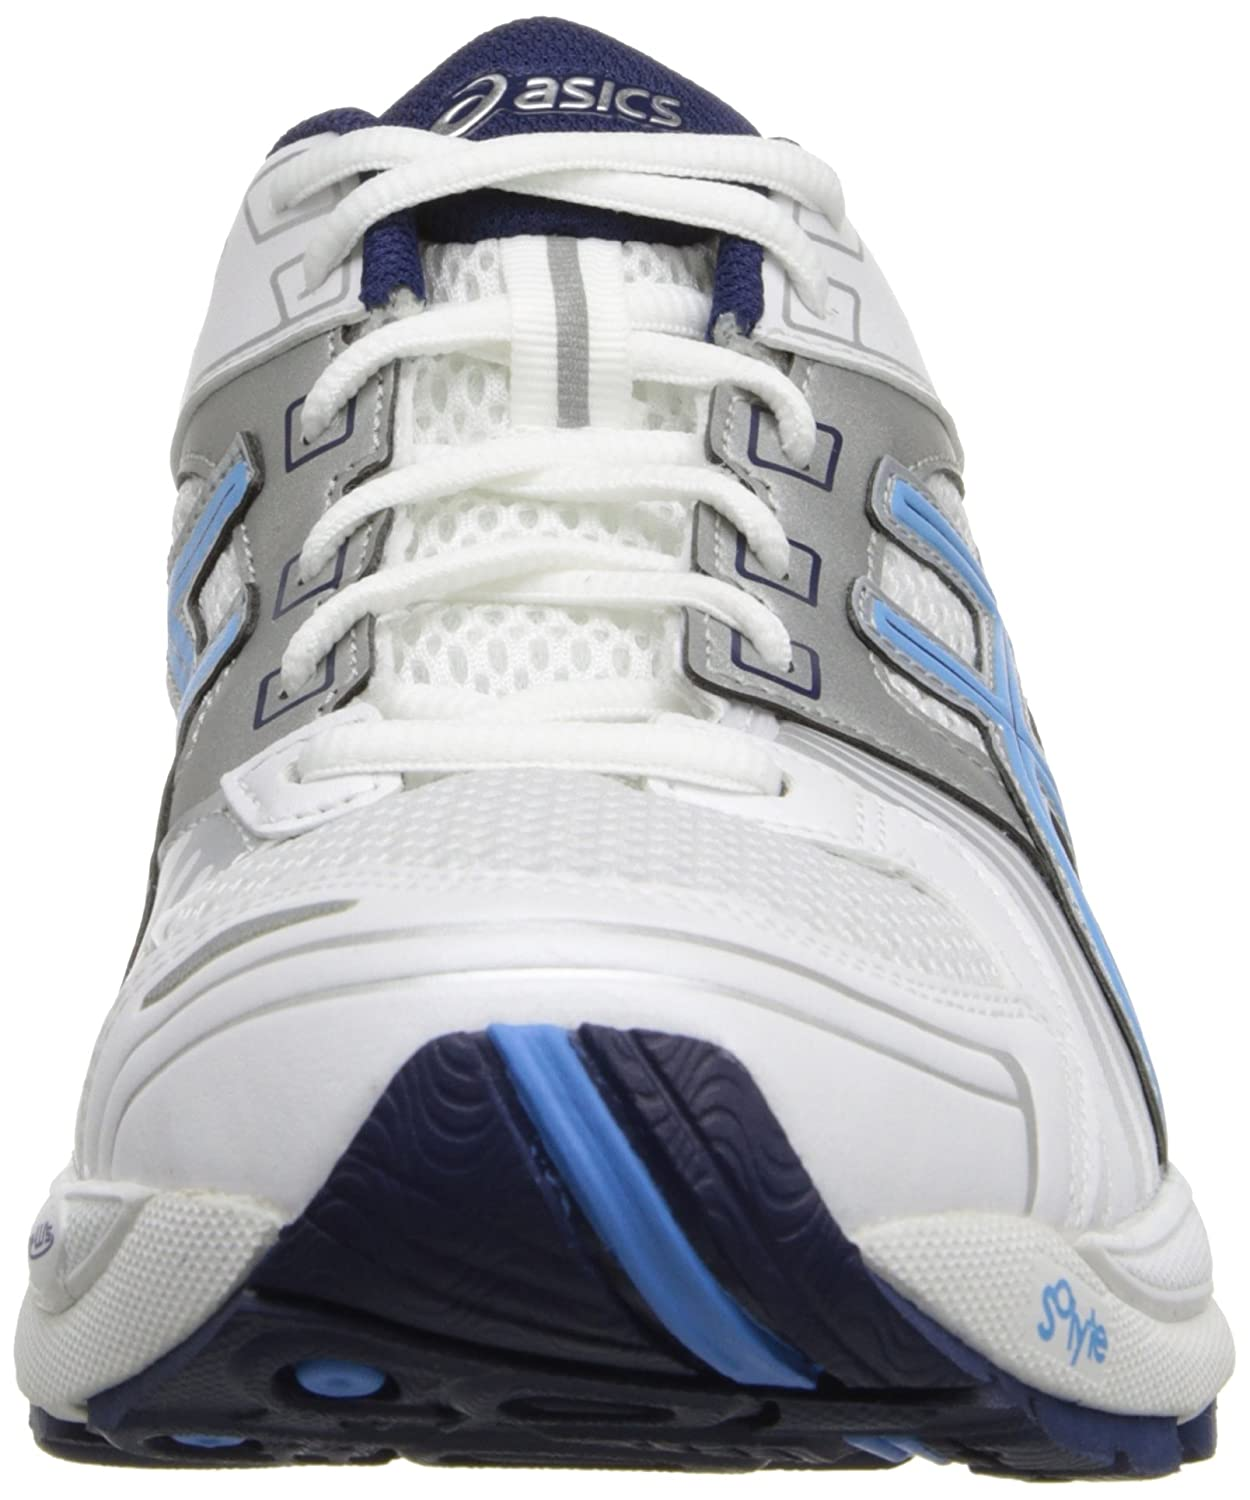 b0b42fb5bc0 Asics Womens Gel-Tech Walker Neo Shoes